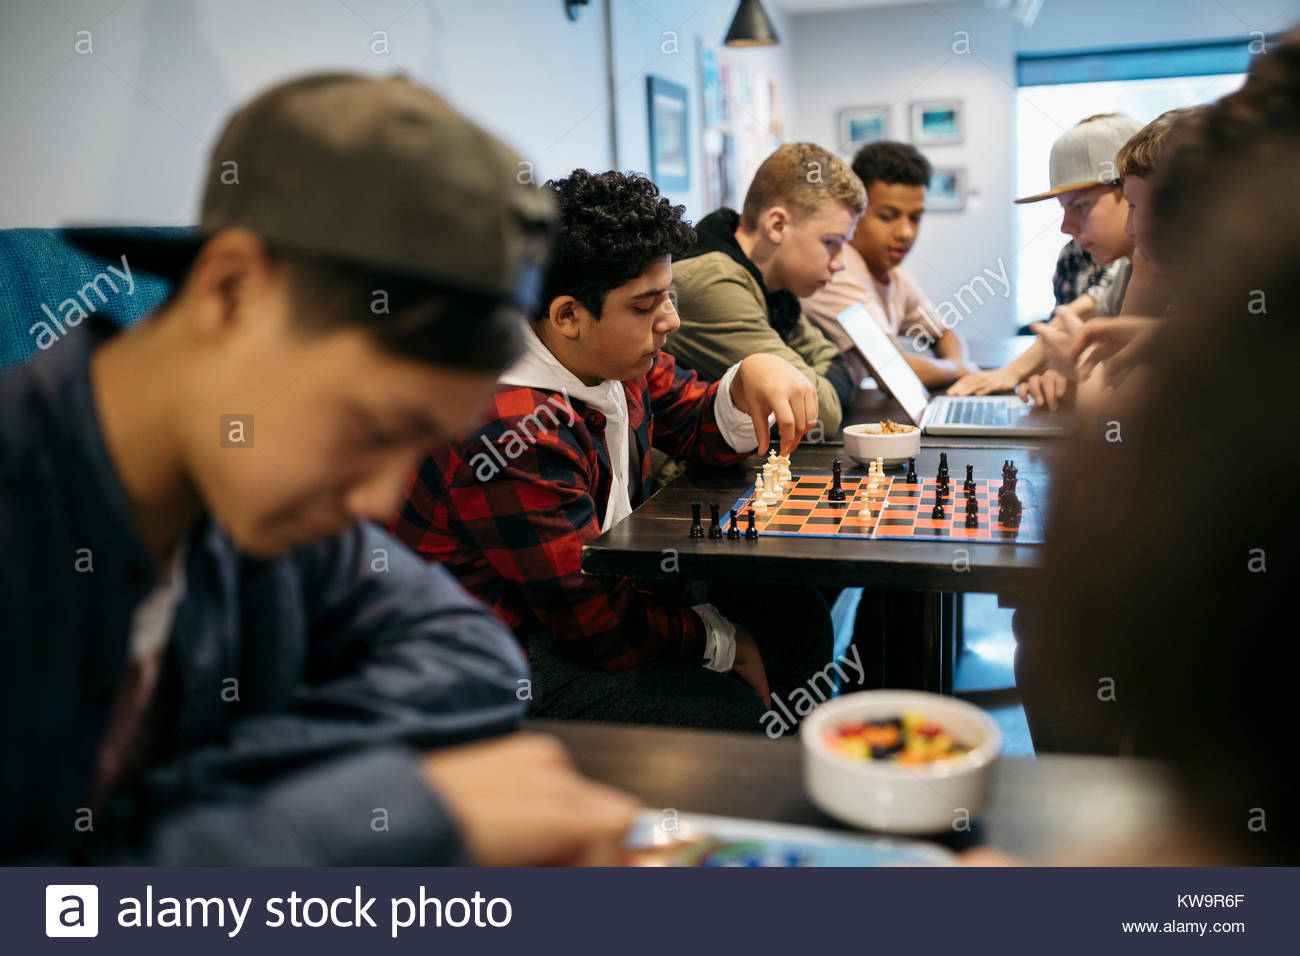 Tween boy friends playing chess at cafe table - Stock Image